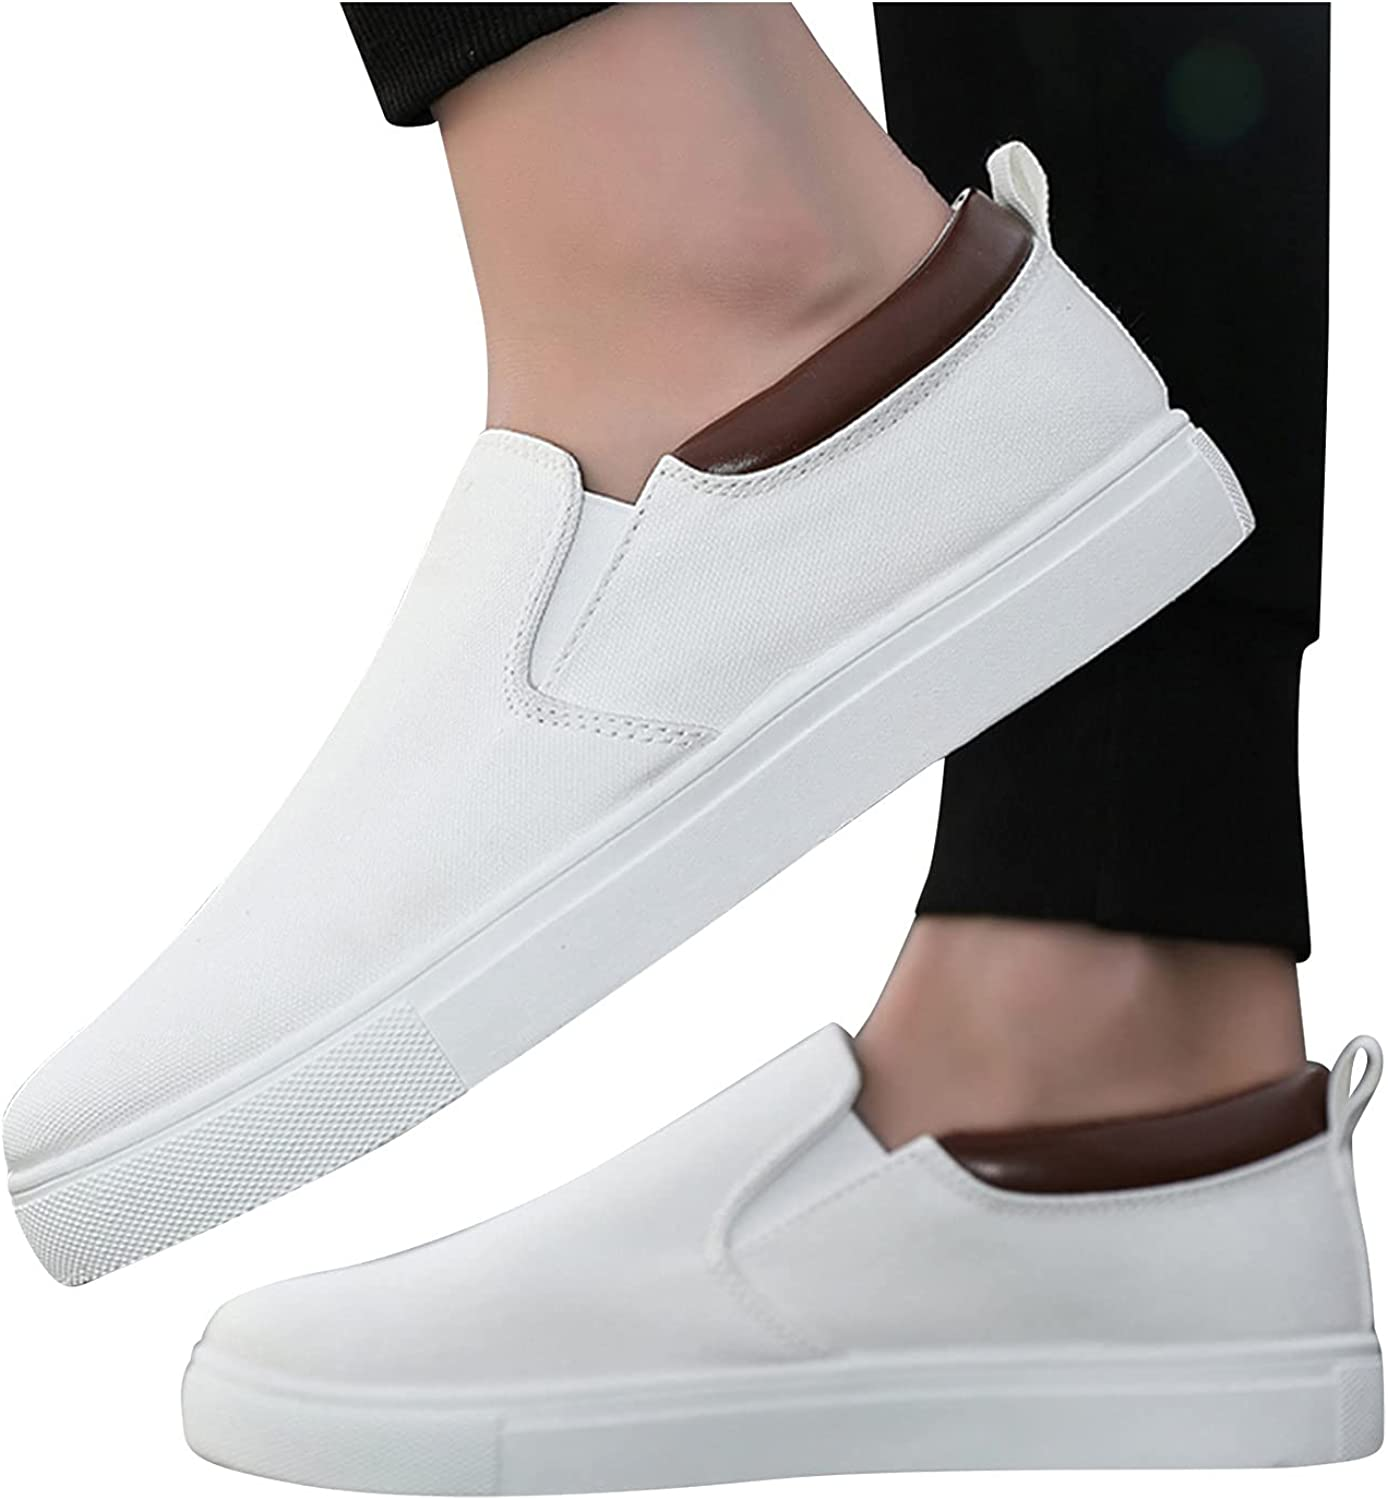 Hbeylia Men's Slip On Canvas Shoes Lightweight Skateboarding Shoes Fashion Casual Walking Sneakers Slip On Loafers Driving Shoes Comfortable Skate Shoes For Men Male